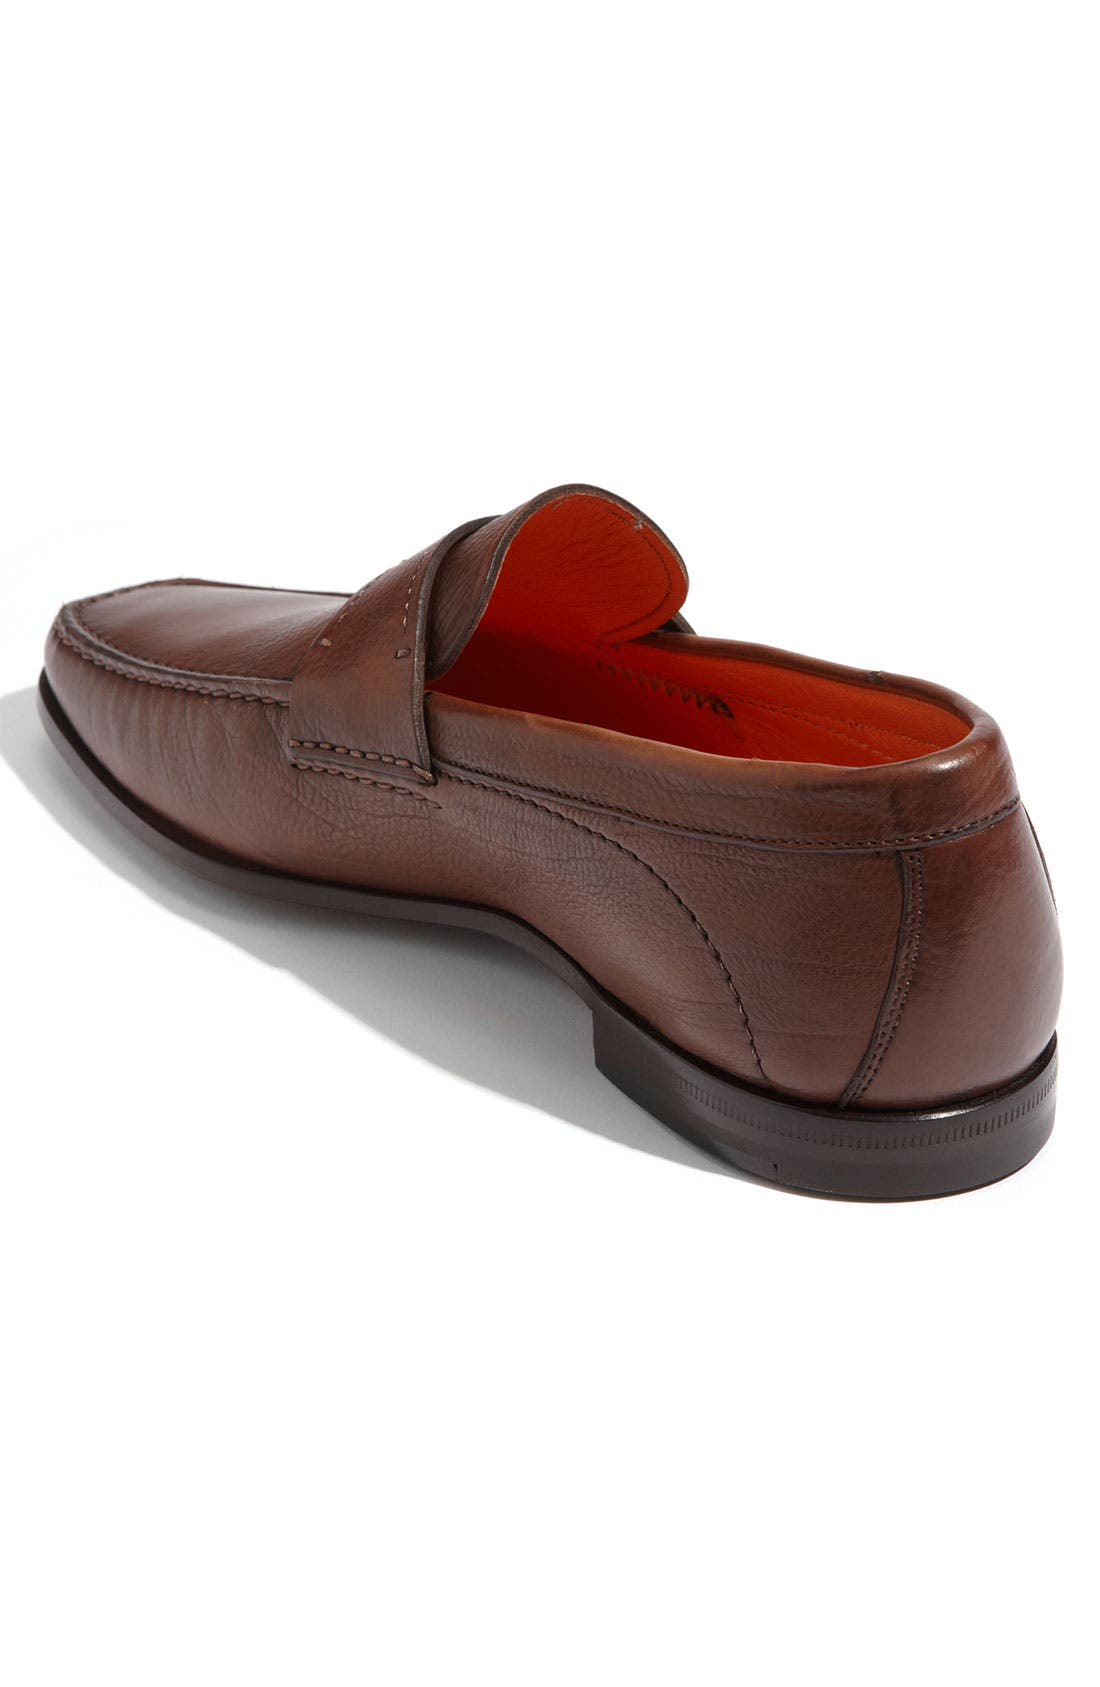 Alternate Image 2  - Santoni 'Quest' Loafer (Men)